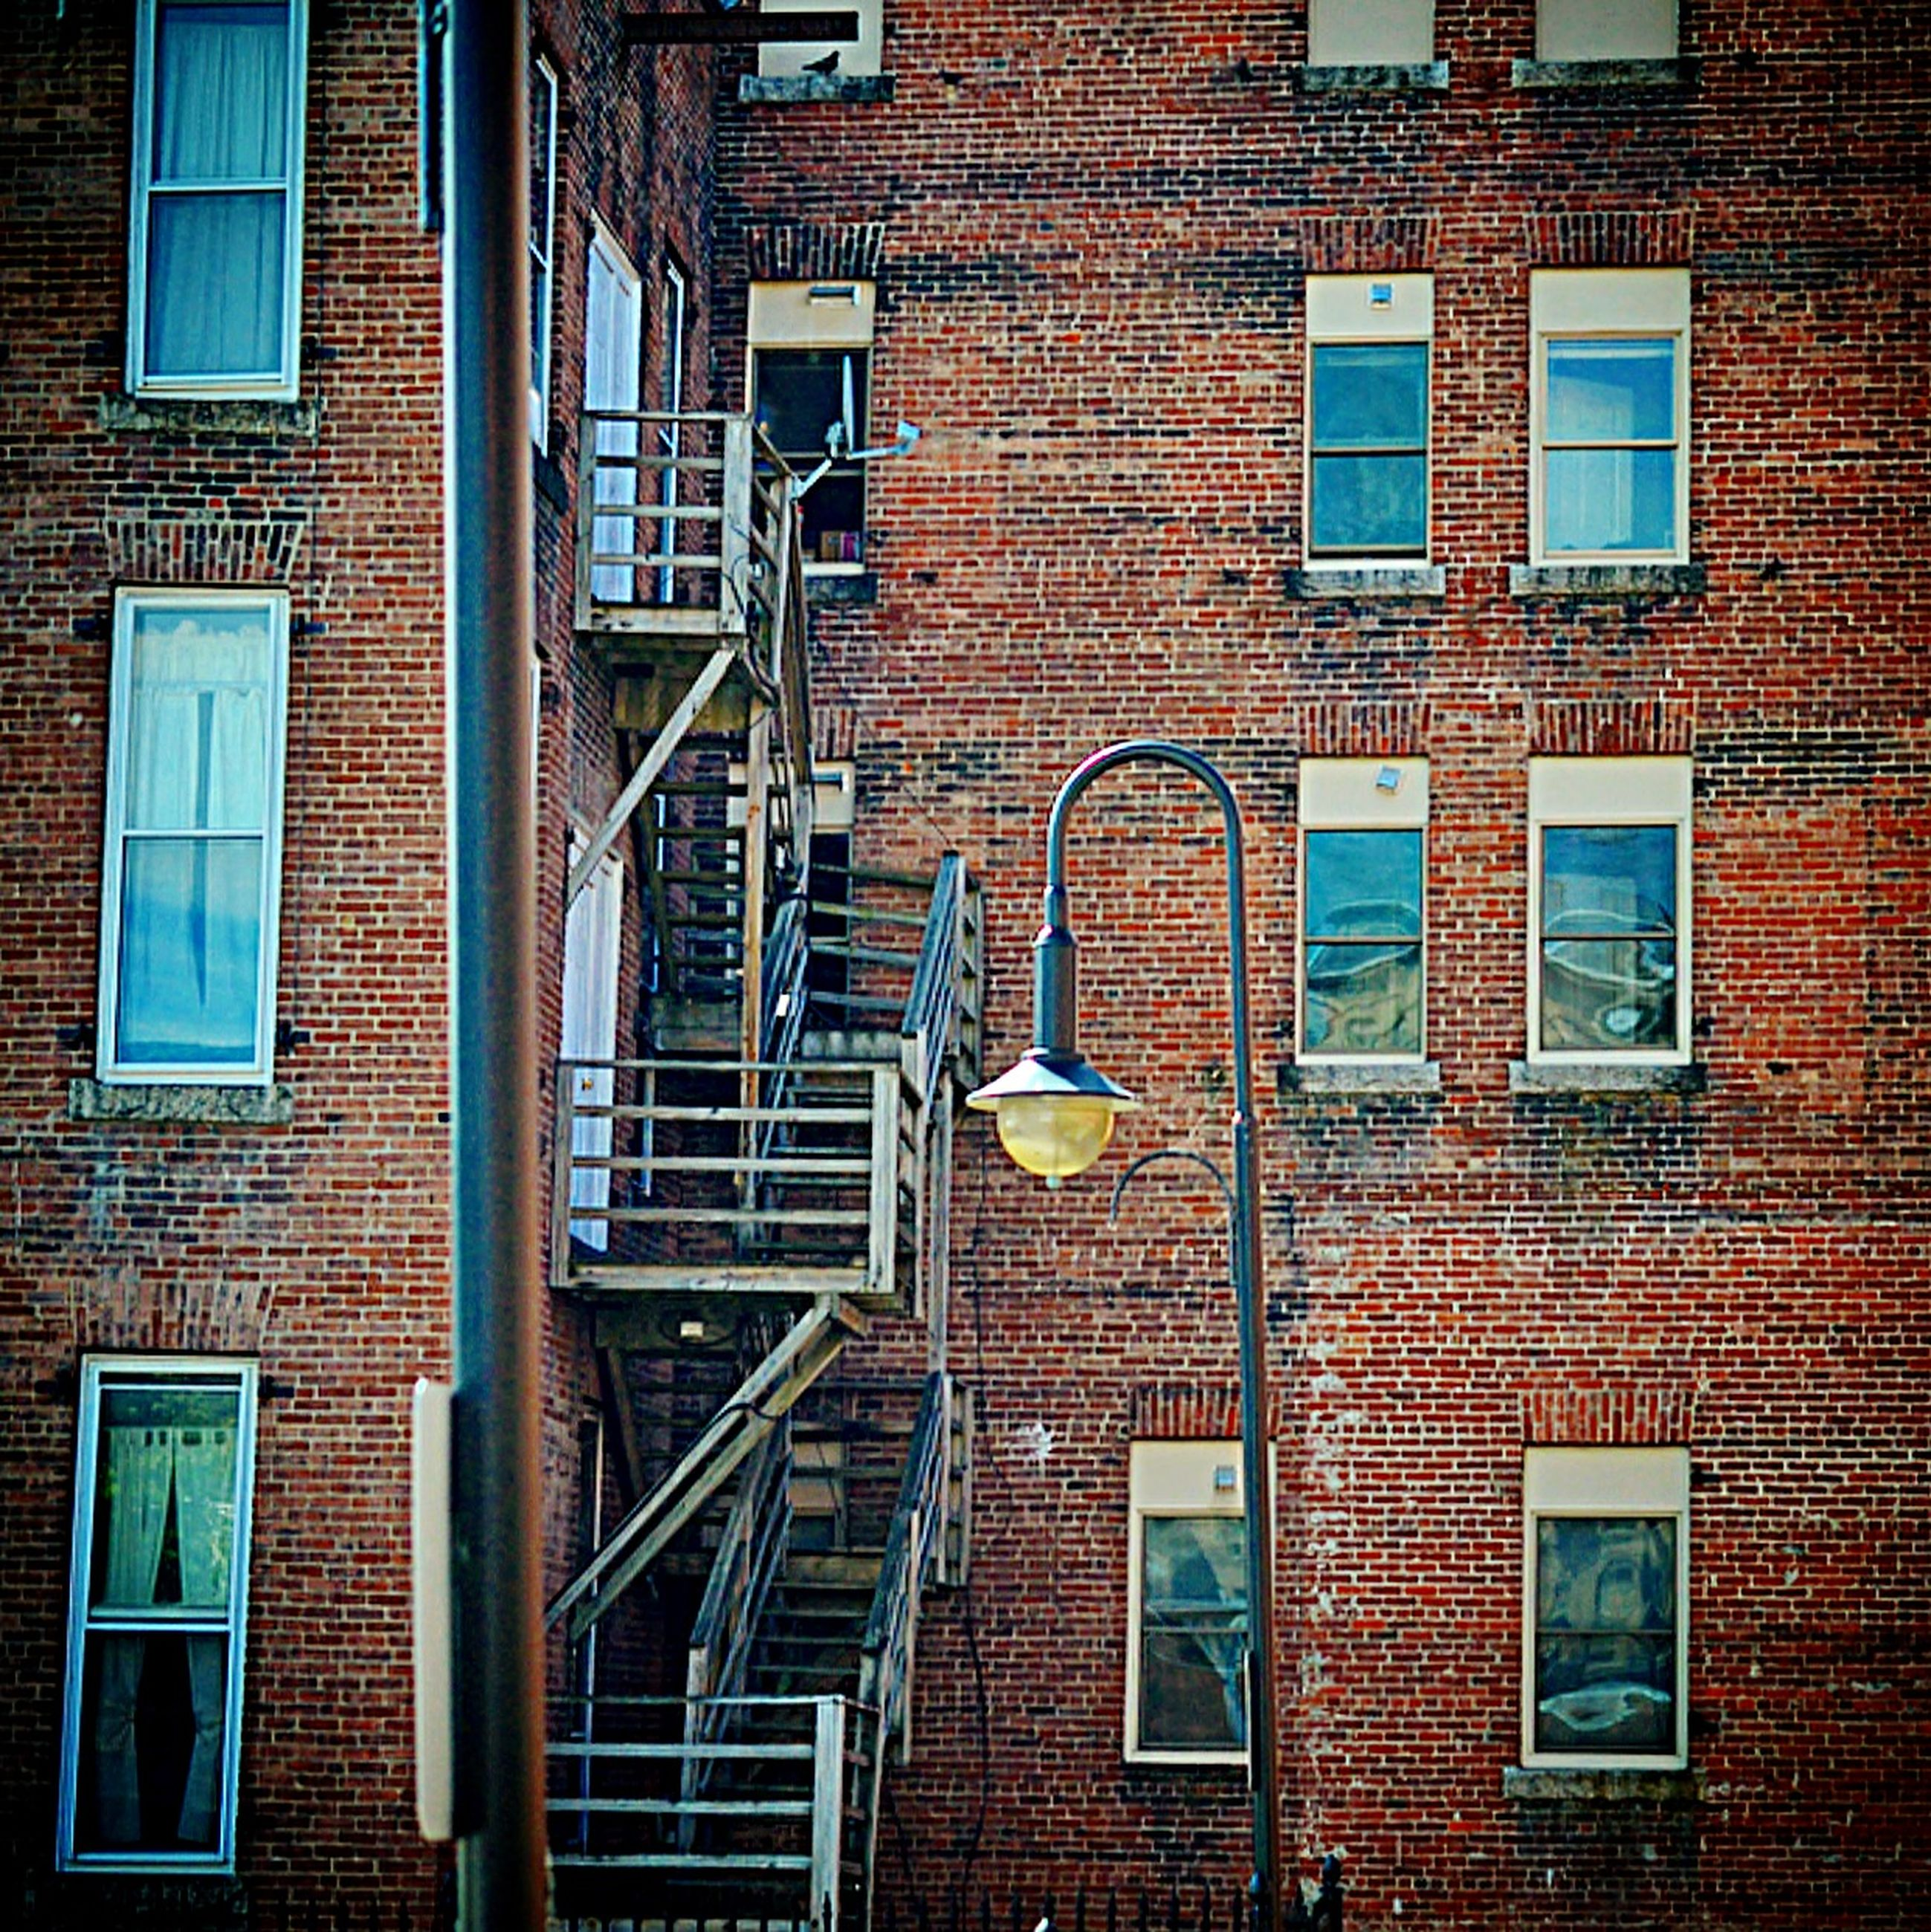 architecture, building exterior, built structure, window, brick wall, residential building, low angle view, building, residential structure, house, brick, full frame, day, wall - building feature, wall, outdoors, old, exterior, no people, city